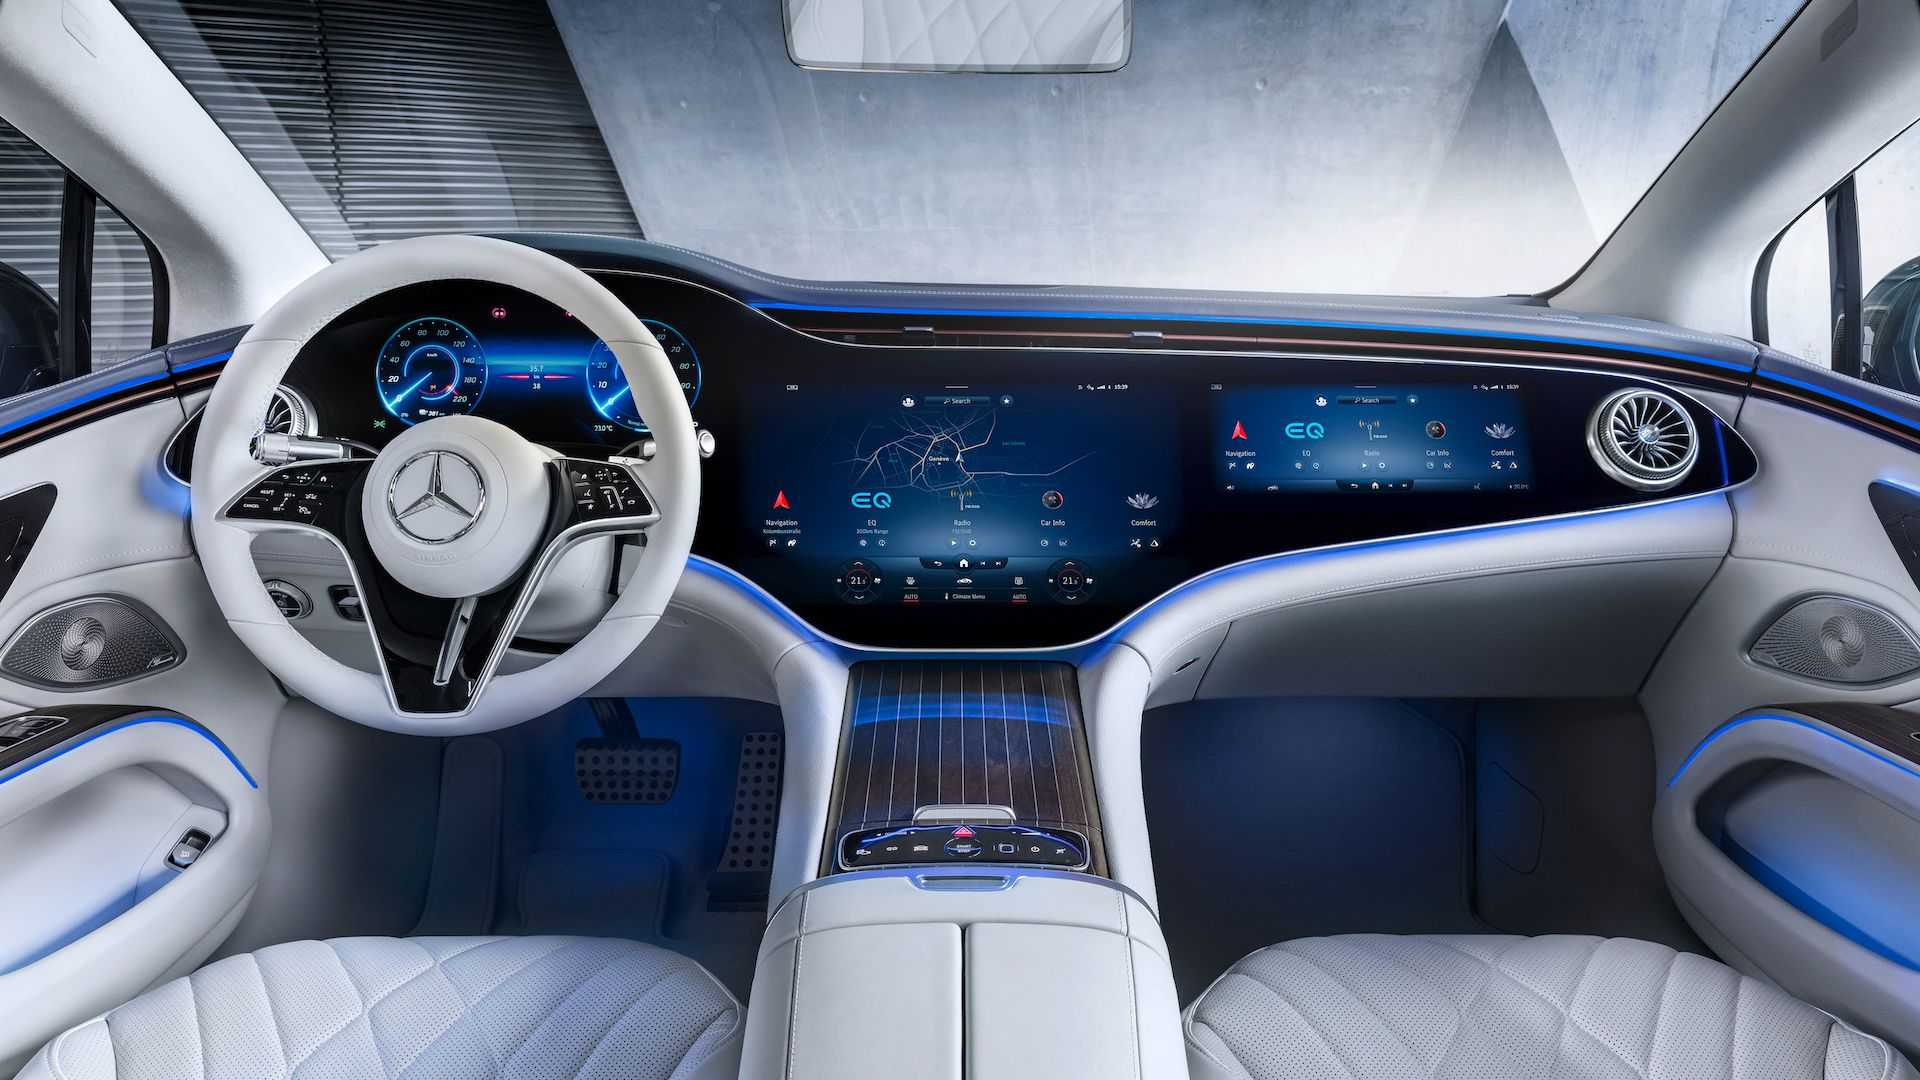 After a long period of waiting, Mercedes has finally revealed that its newest all-electric luxury sedan – the EQS – can cover up to 770 kilometers, or 478 miles, on a single charge.